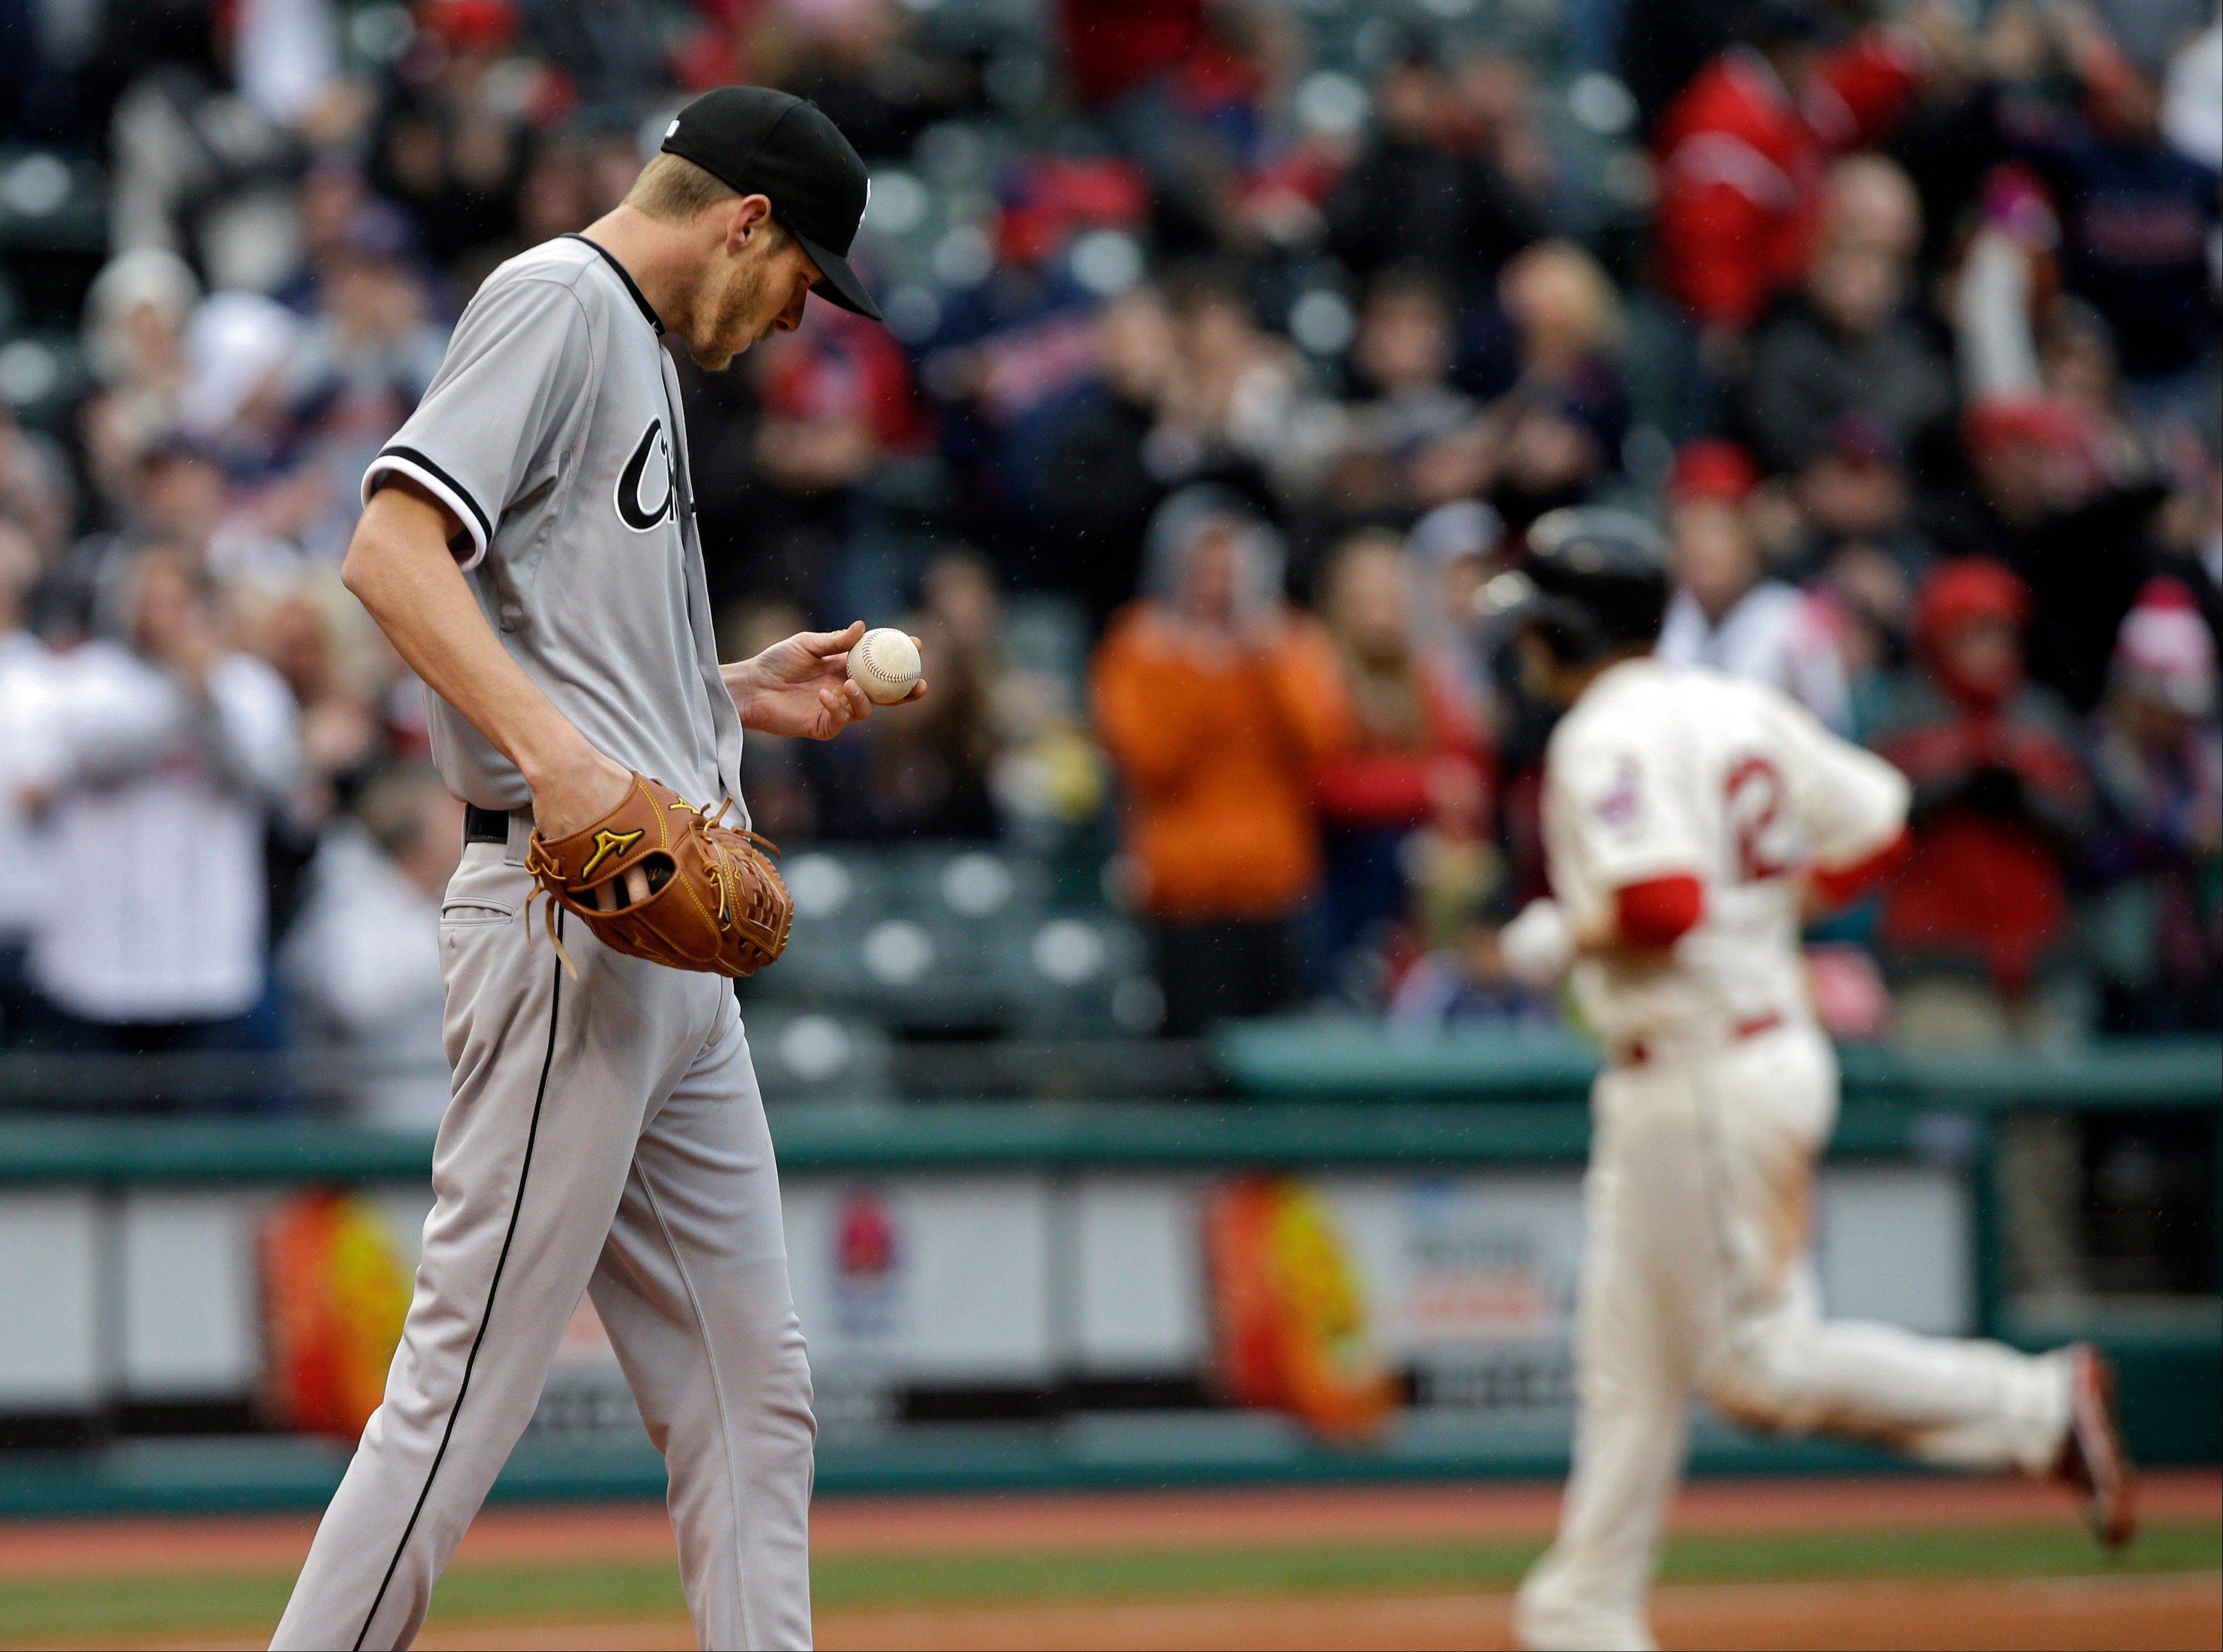 Chicago White Sox starting pitcher Chris Sale walks back to the mound after giving up a grand slam to Cleveland Indians� Mark Reynolds, background, in the fifth inning of a baseball game Saturday in Cleveland.